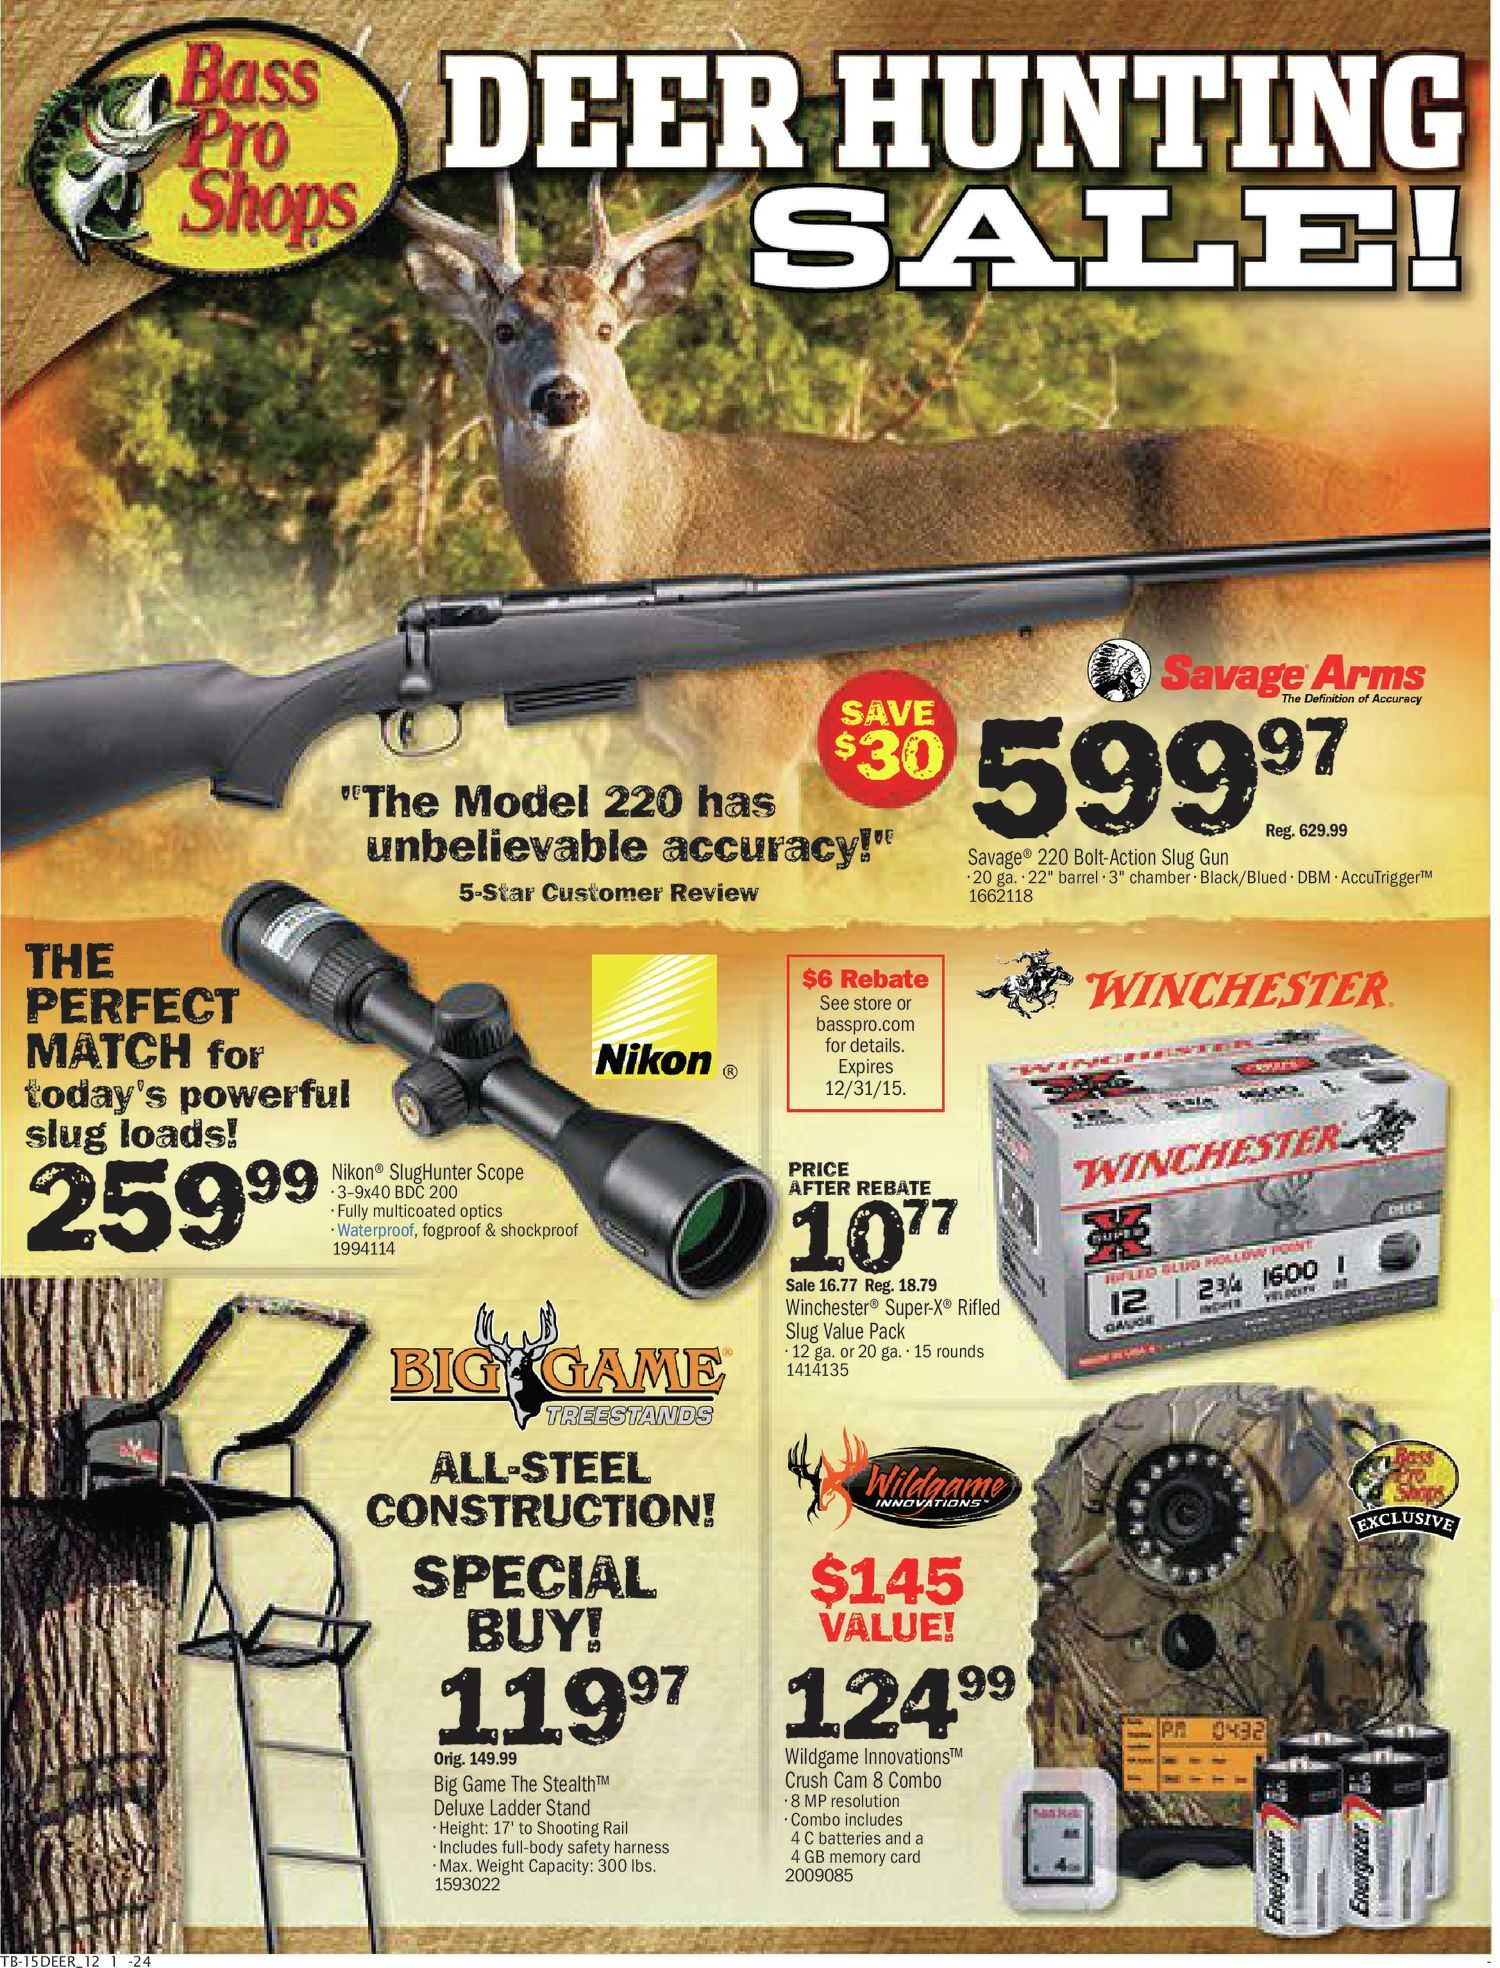 sale in observations agriculture hunting blinds for and deer best box bow